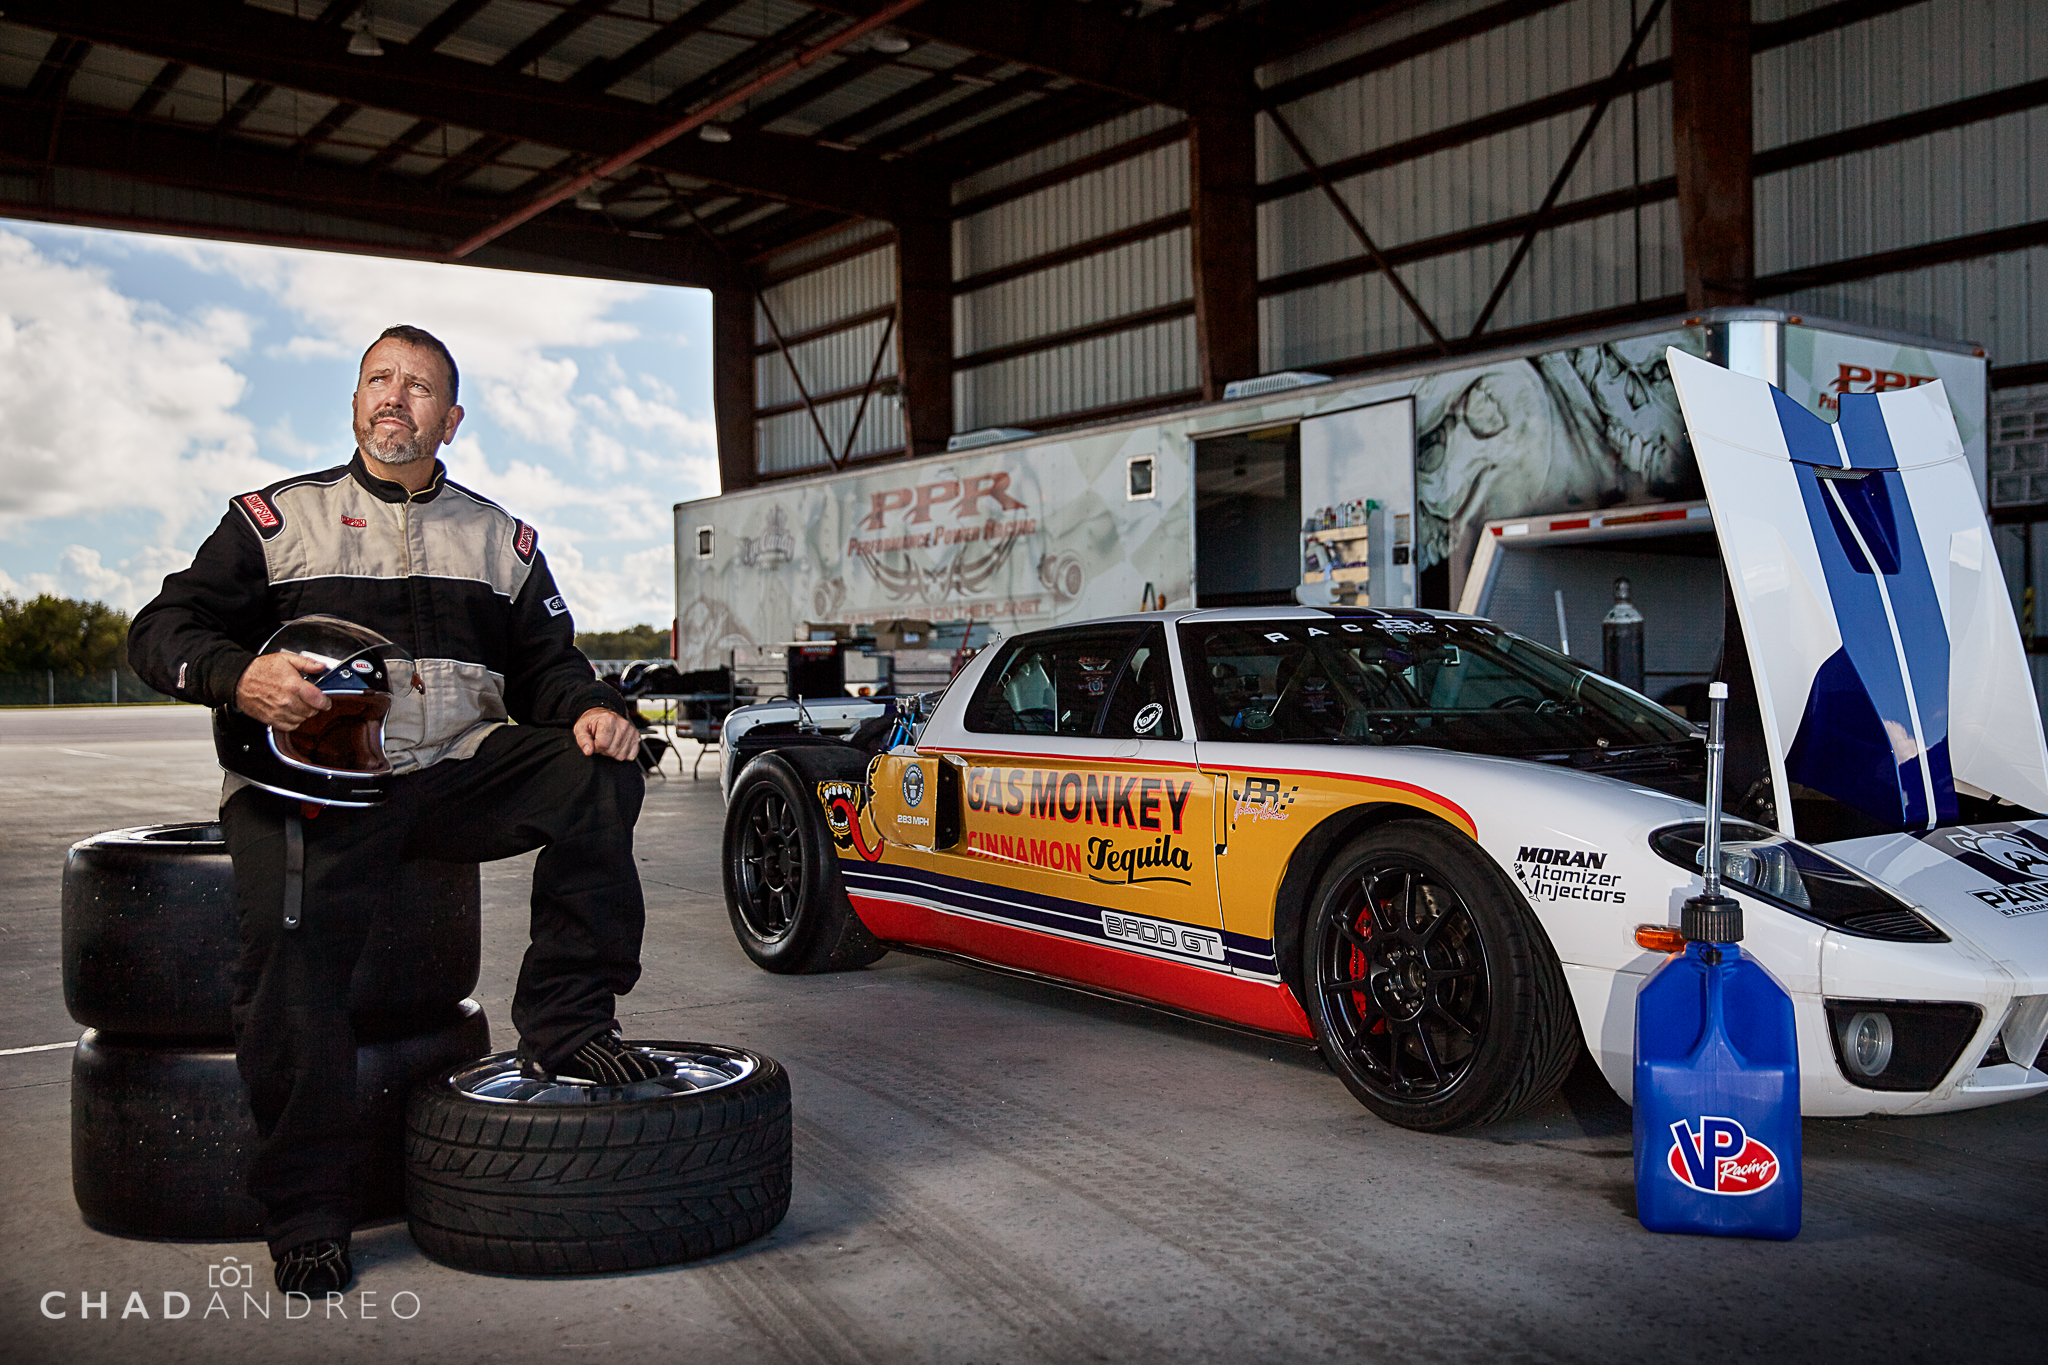 Chad-Andreo-BaddGT-Commercial-Photographer-6431 1R-2.jpg